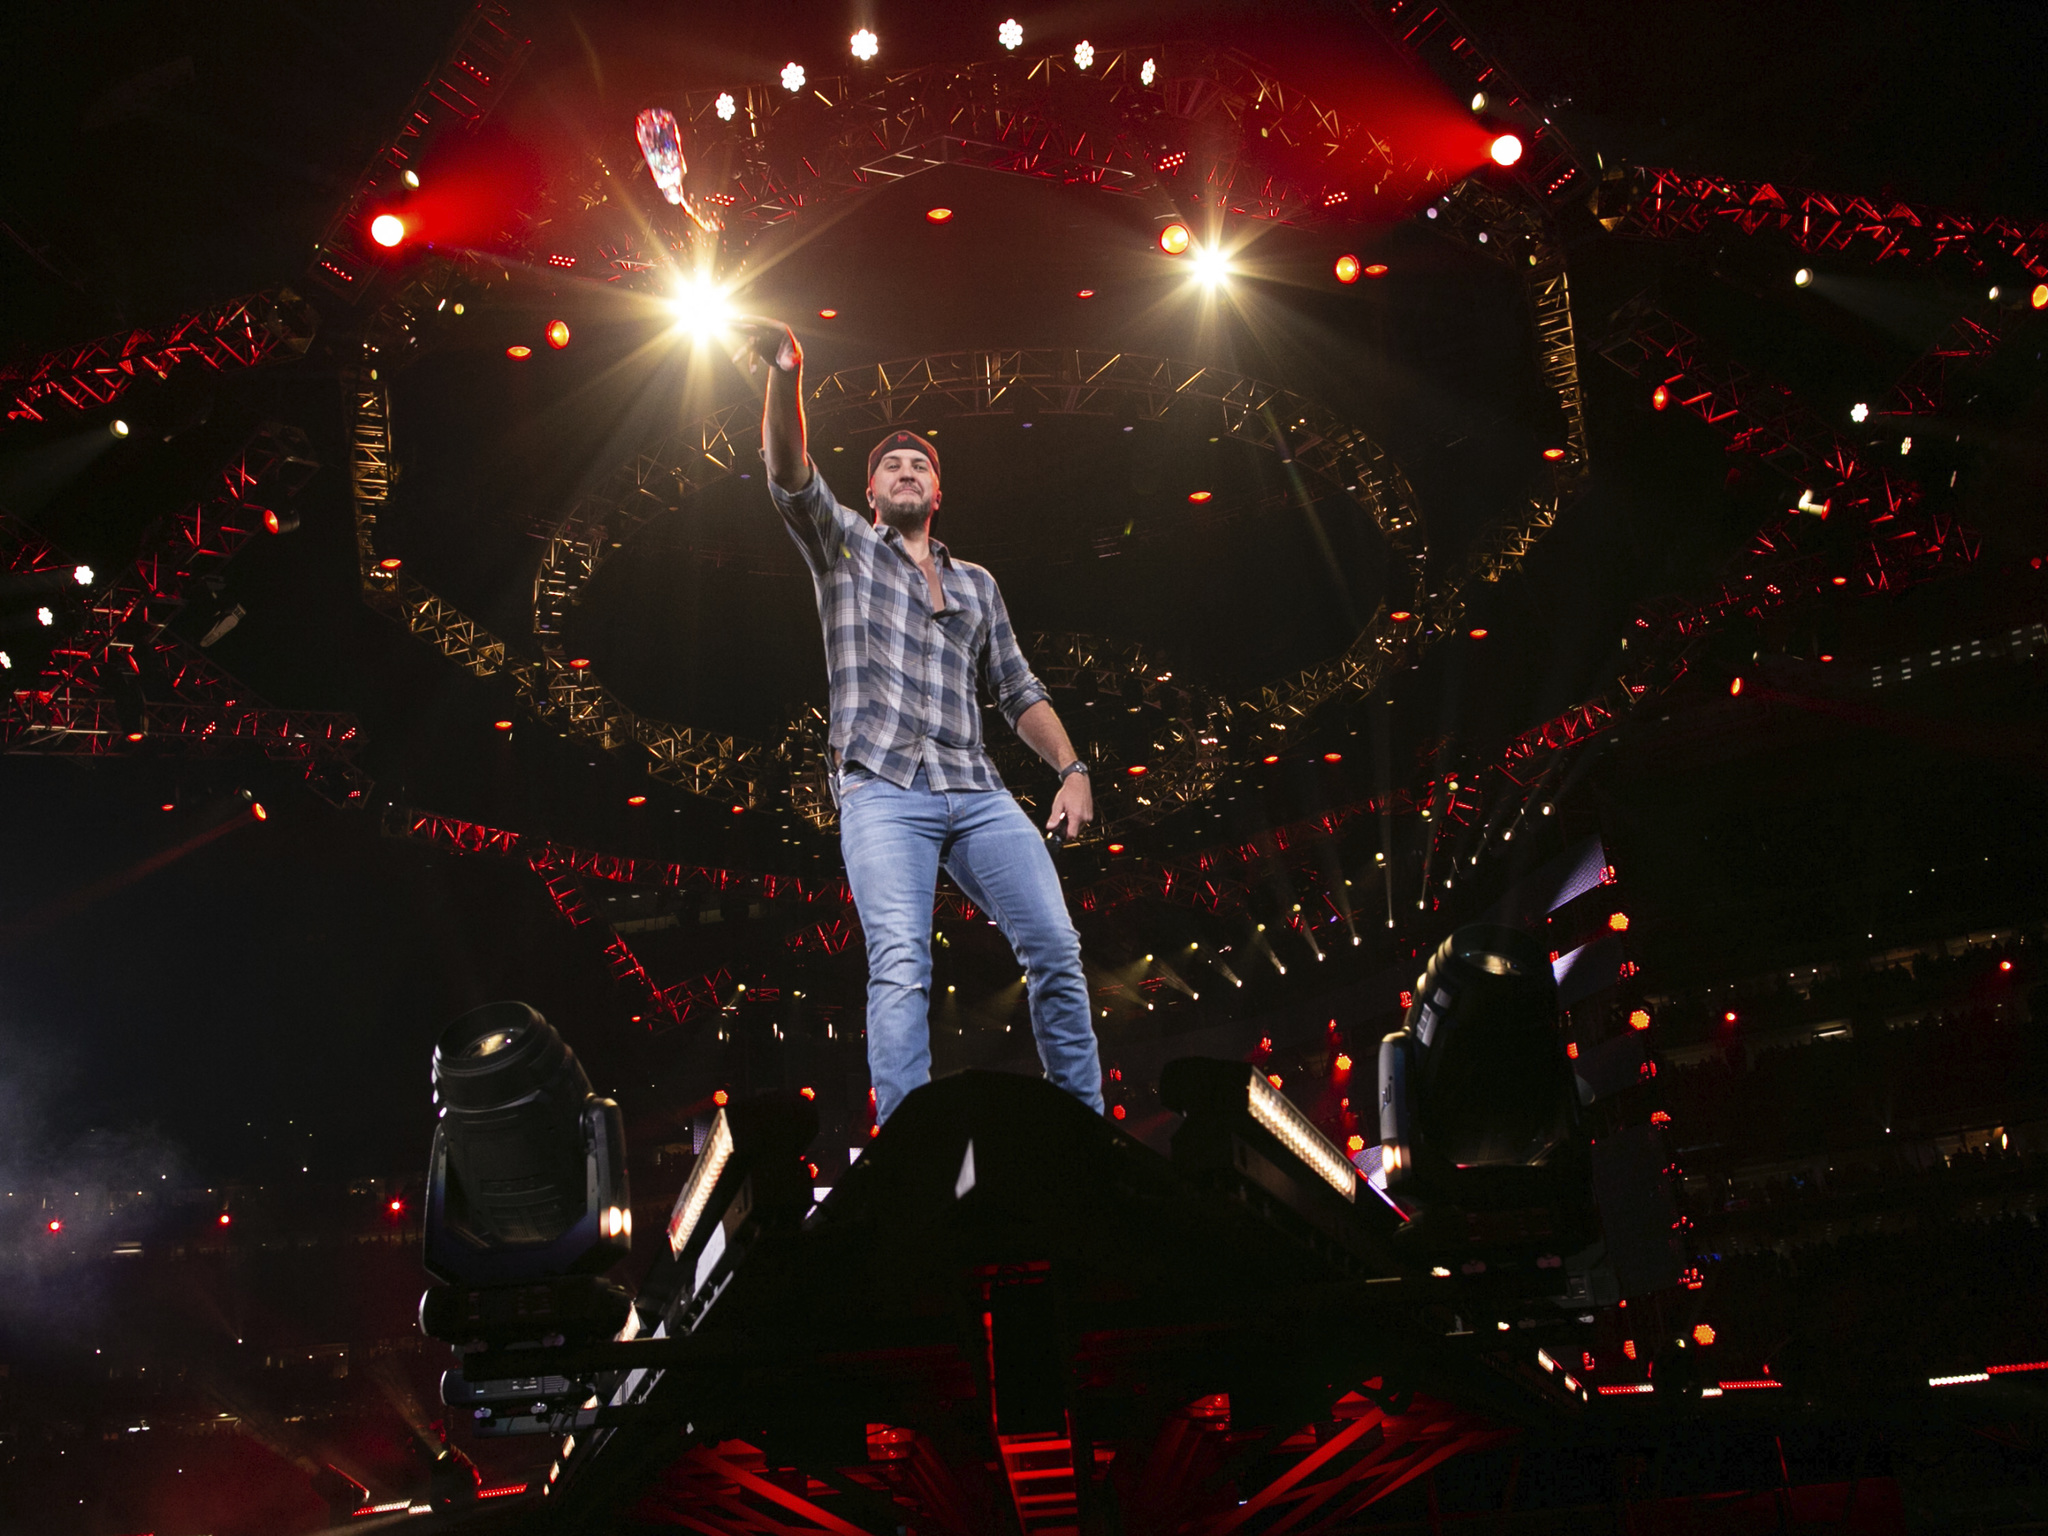 luke bryan on the edge of the stage (Photo by F. Carter Smith )